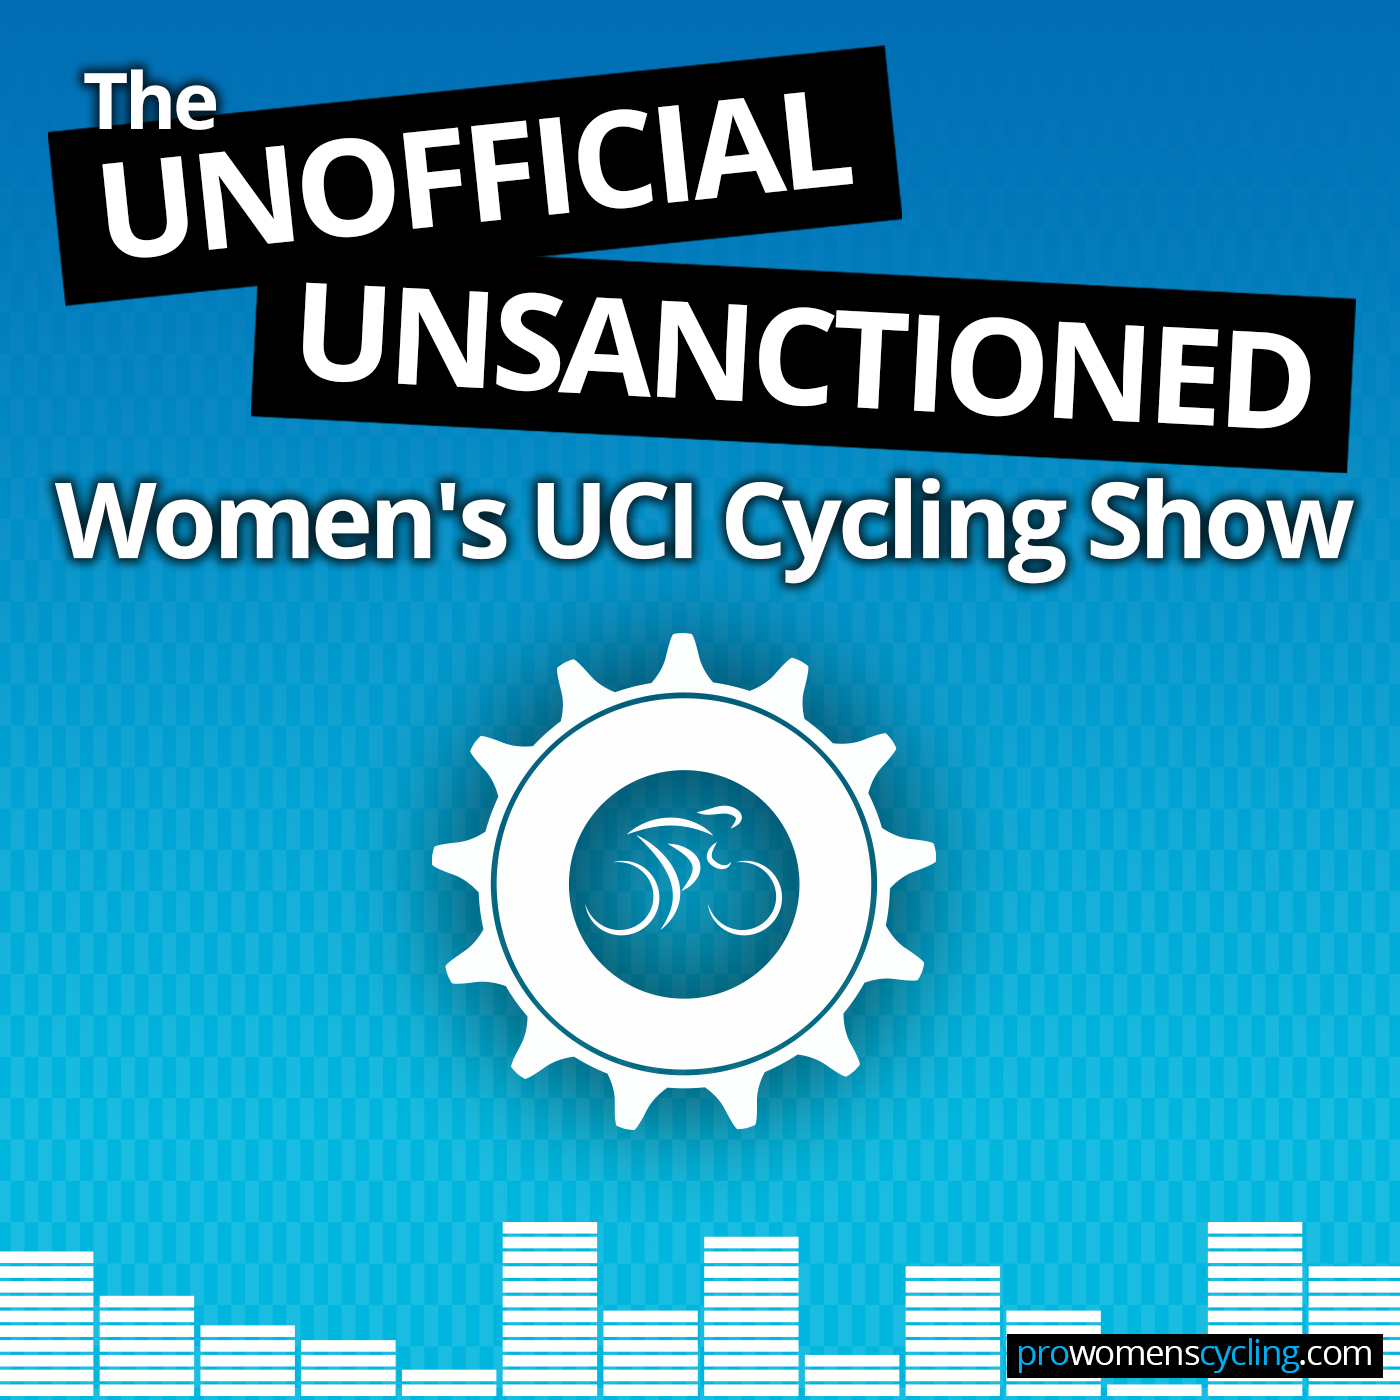 The colombian women s cycling team idrd bogota humana san mateo - The Unofficial Unsanctioned Women S Uci Cycling Show Team